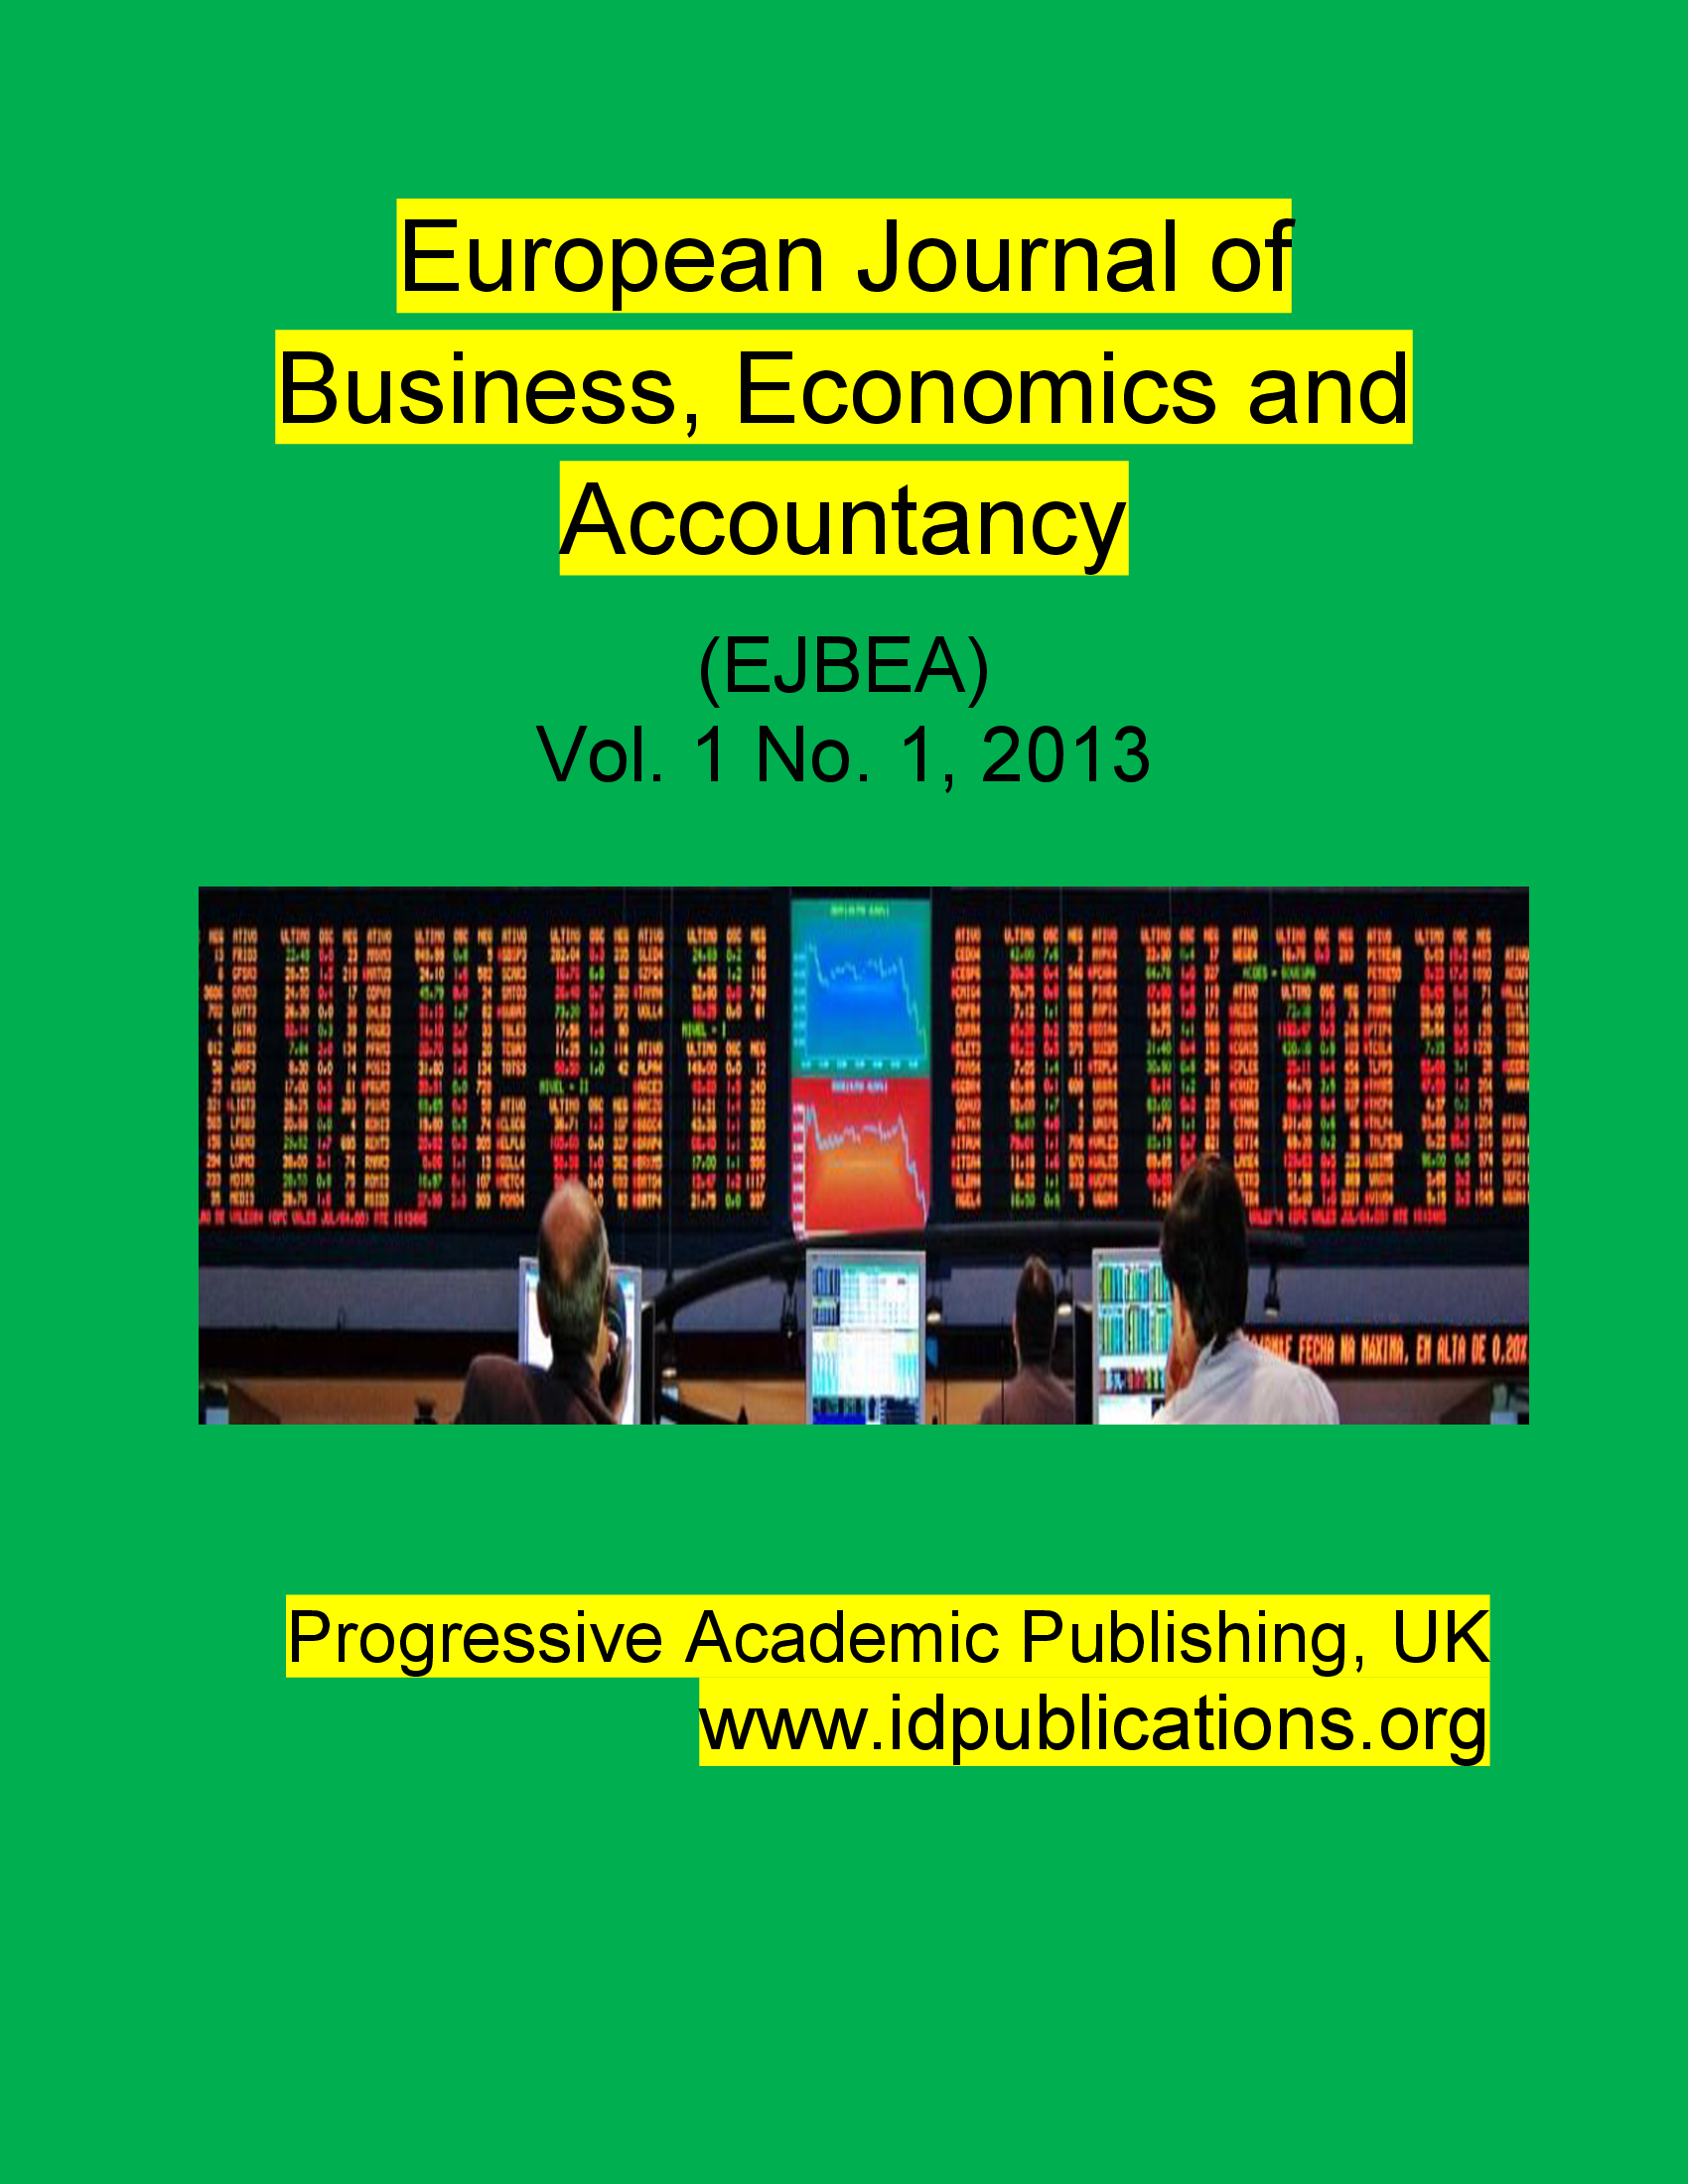 european journal of business and managementissn The european journal of applied business and management (ejabm) is an international double-blind-peer-reviewed, open-access academic journal that publishes original empirical and theoretical research articles.